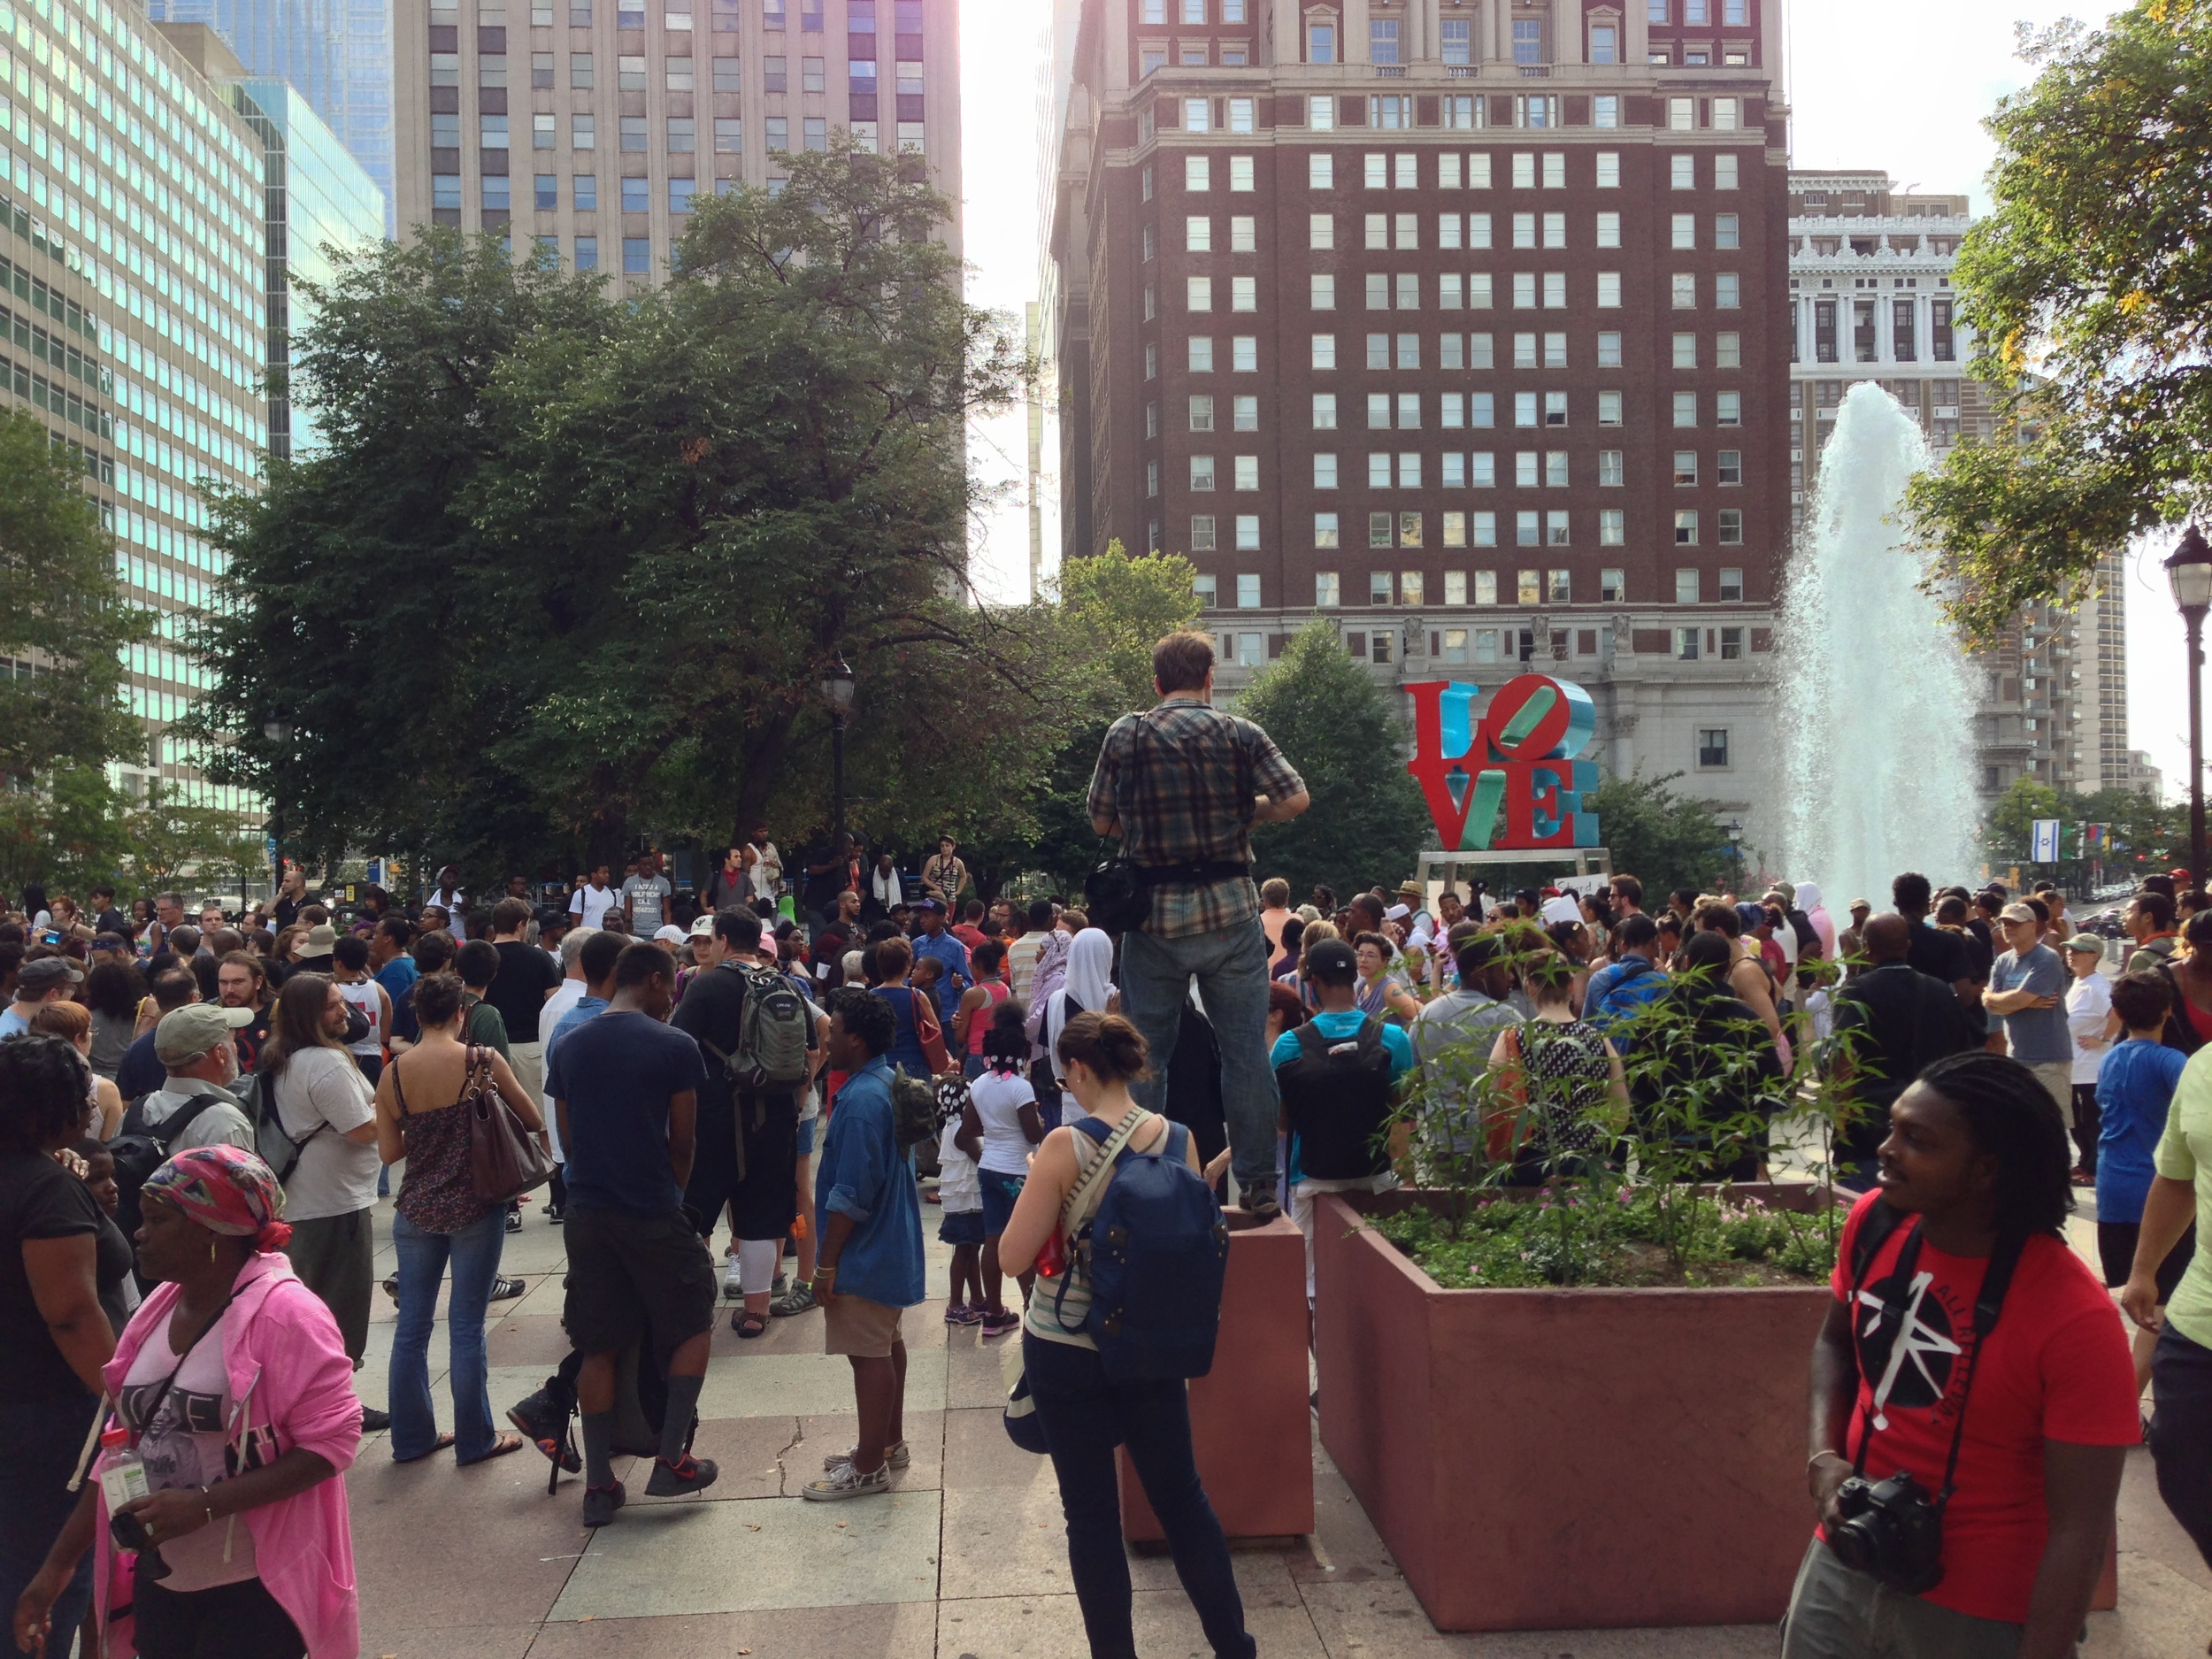 The rally at Love Park (Center City Philadelphia) for the verdict in the Trayvon Martin killing.